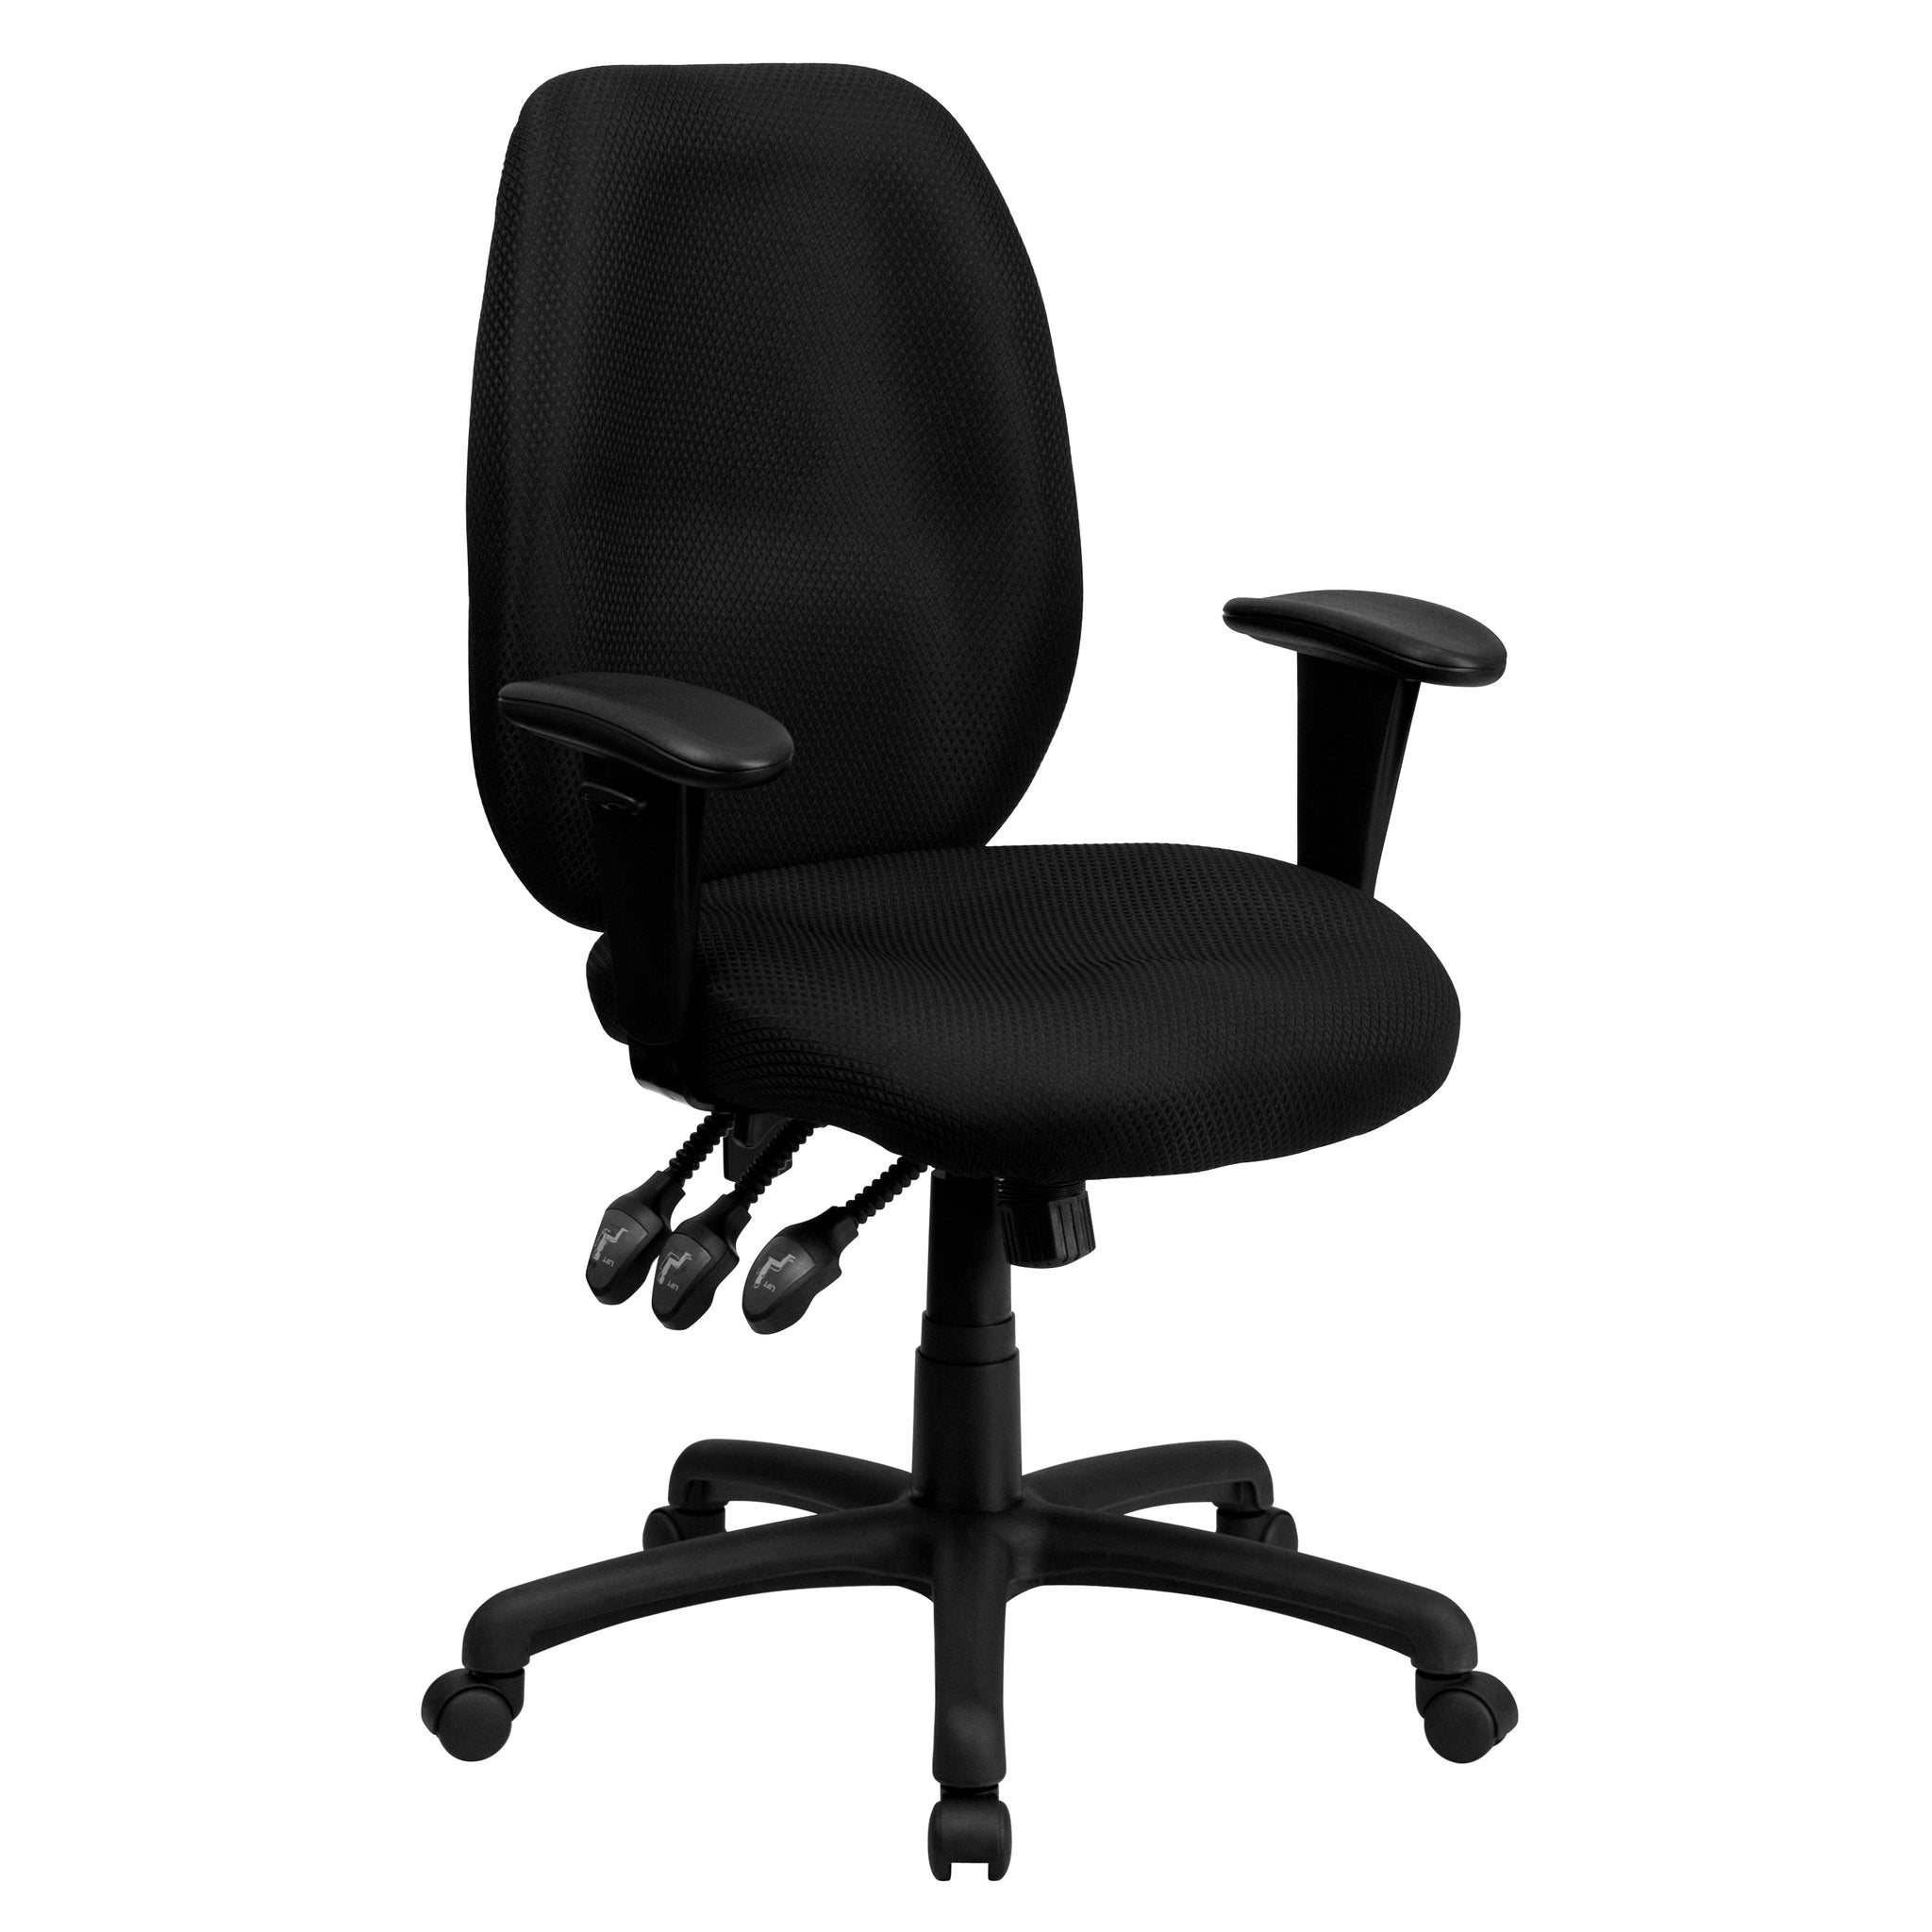 High Back Fabric Multi-Functional Ergonomic Executive Swivel Office Chair with Height Adjustable Arms: Black